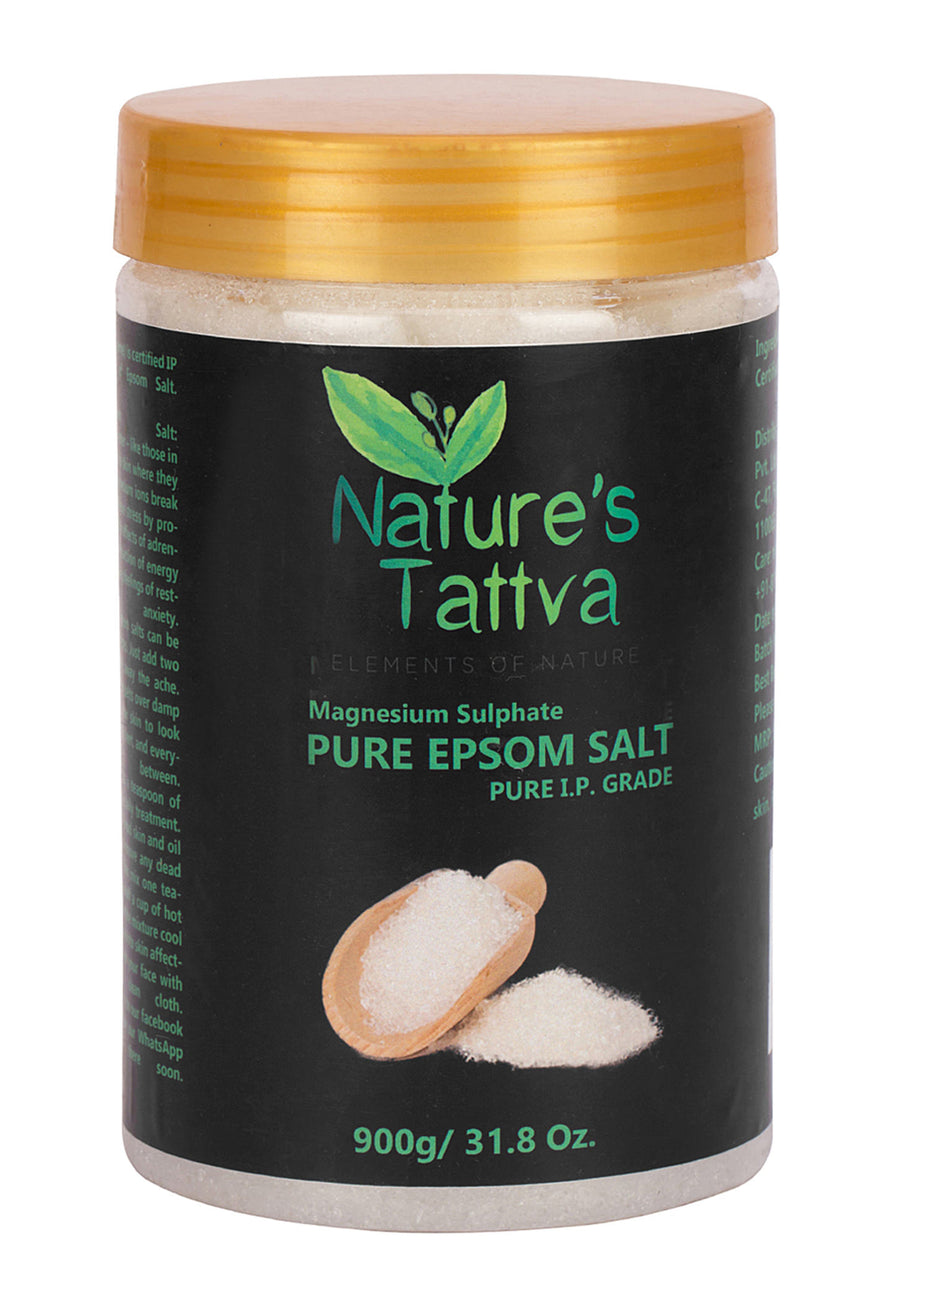 Nature's Tattva Epsom Salt or Magnesium Sulphate for Bath, Foot & Refreshing Body Spa, 900gm, Beauty & Skin Care, Nature's Tattva, ihaat, [made_in_india], [handmade] - ihaat